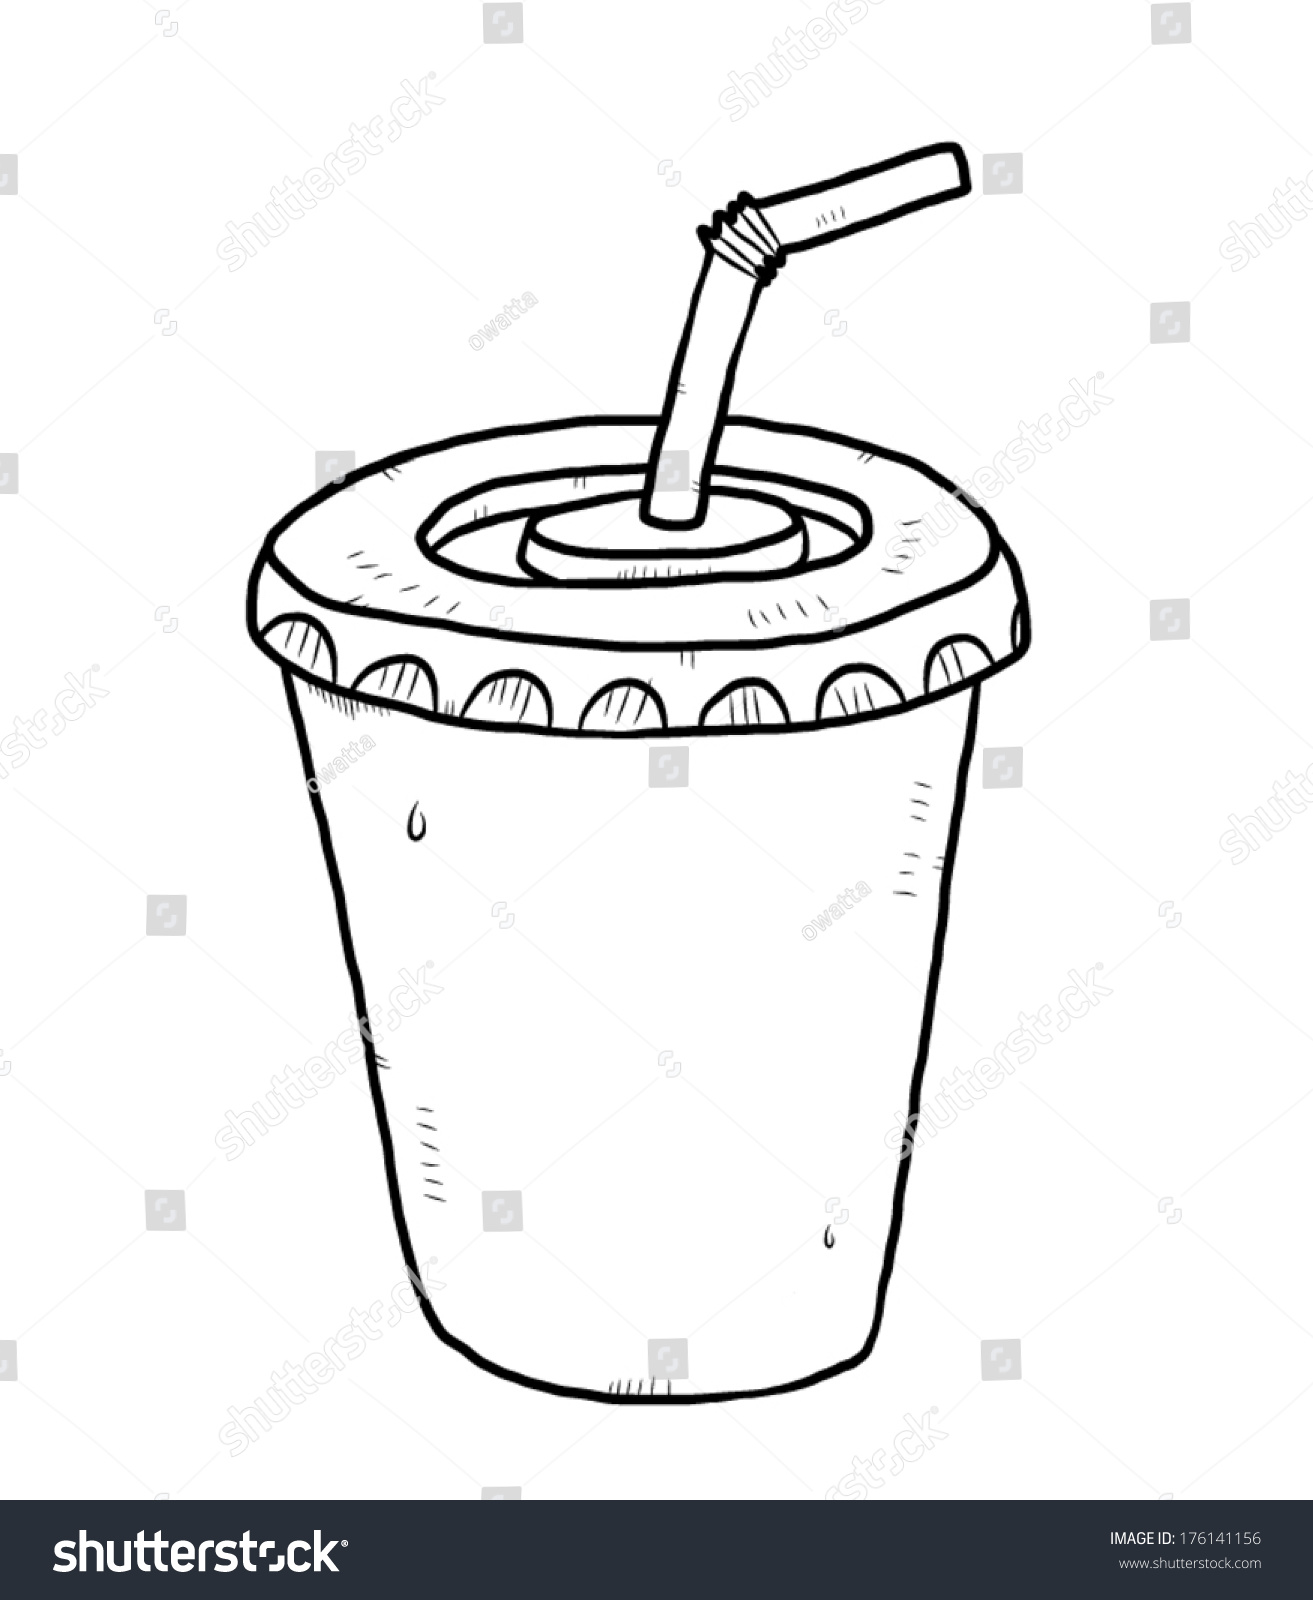 how to draw cartoon water splashing in a cup